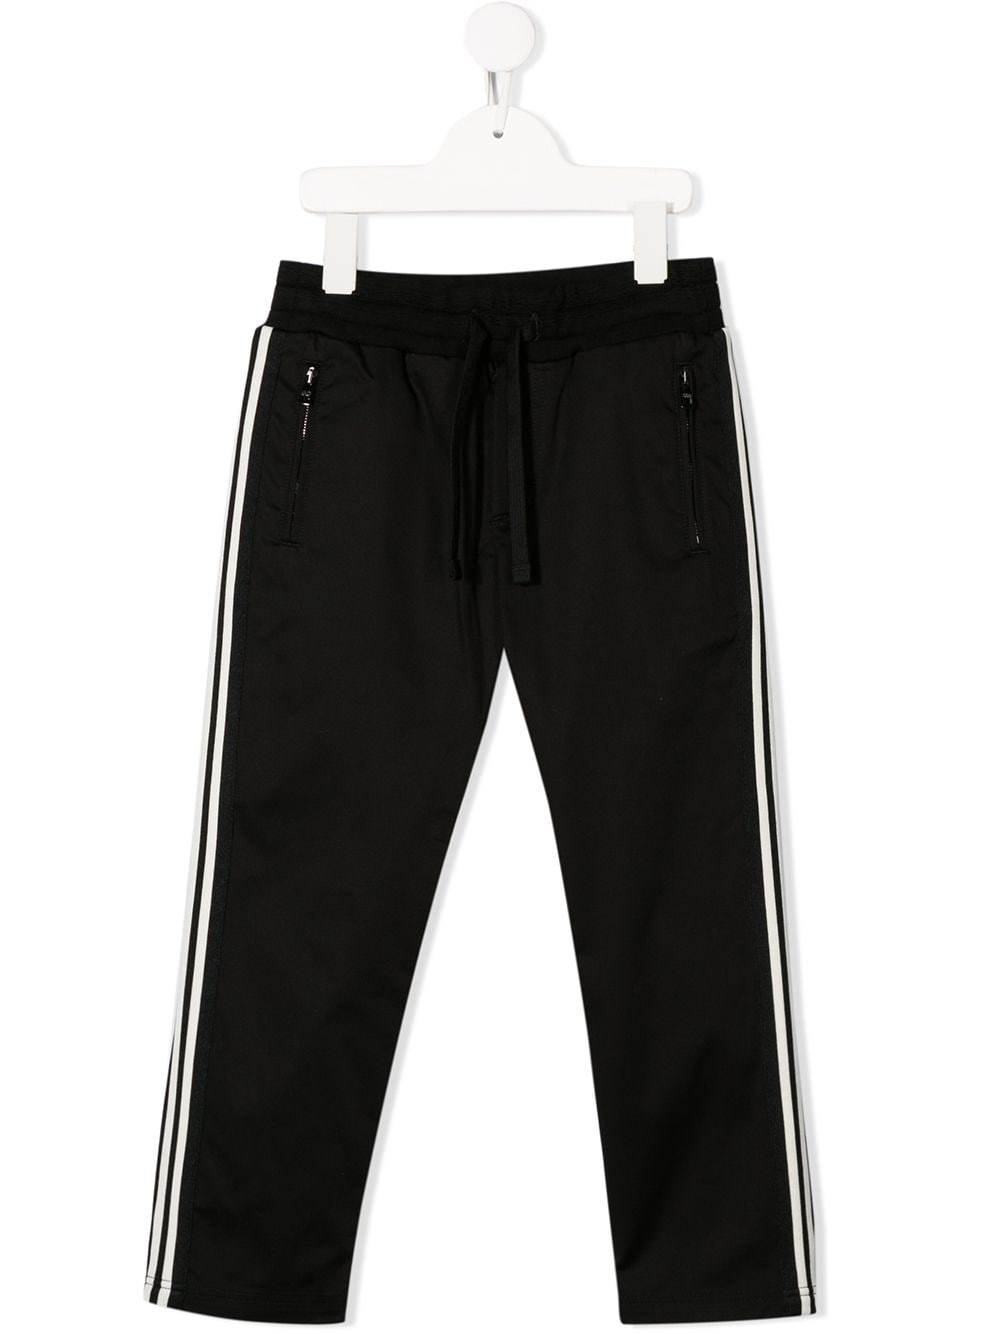 DOLCE & GABBANA KIDS striped-side track pants black